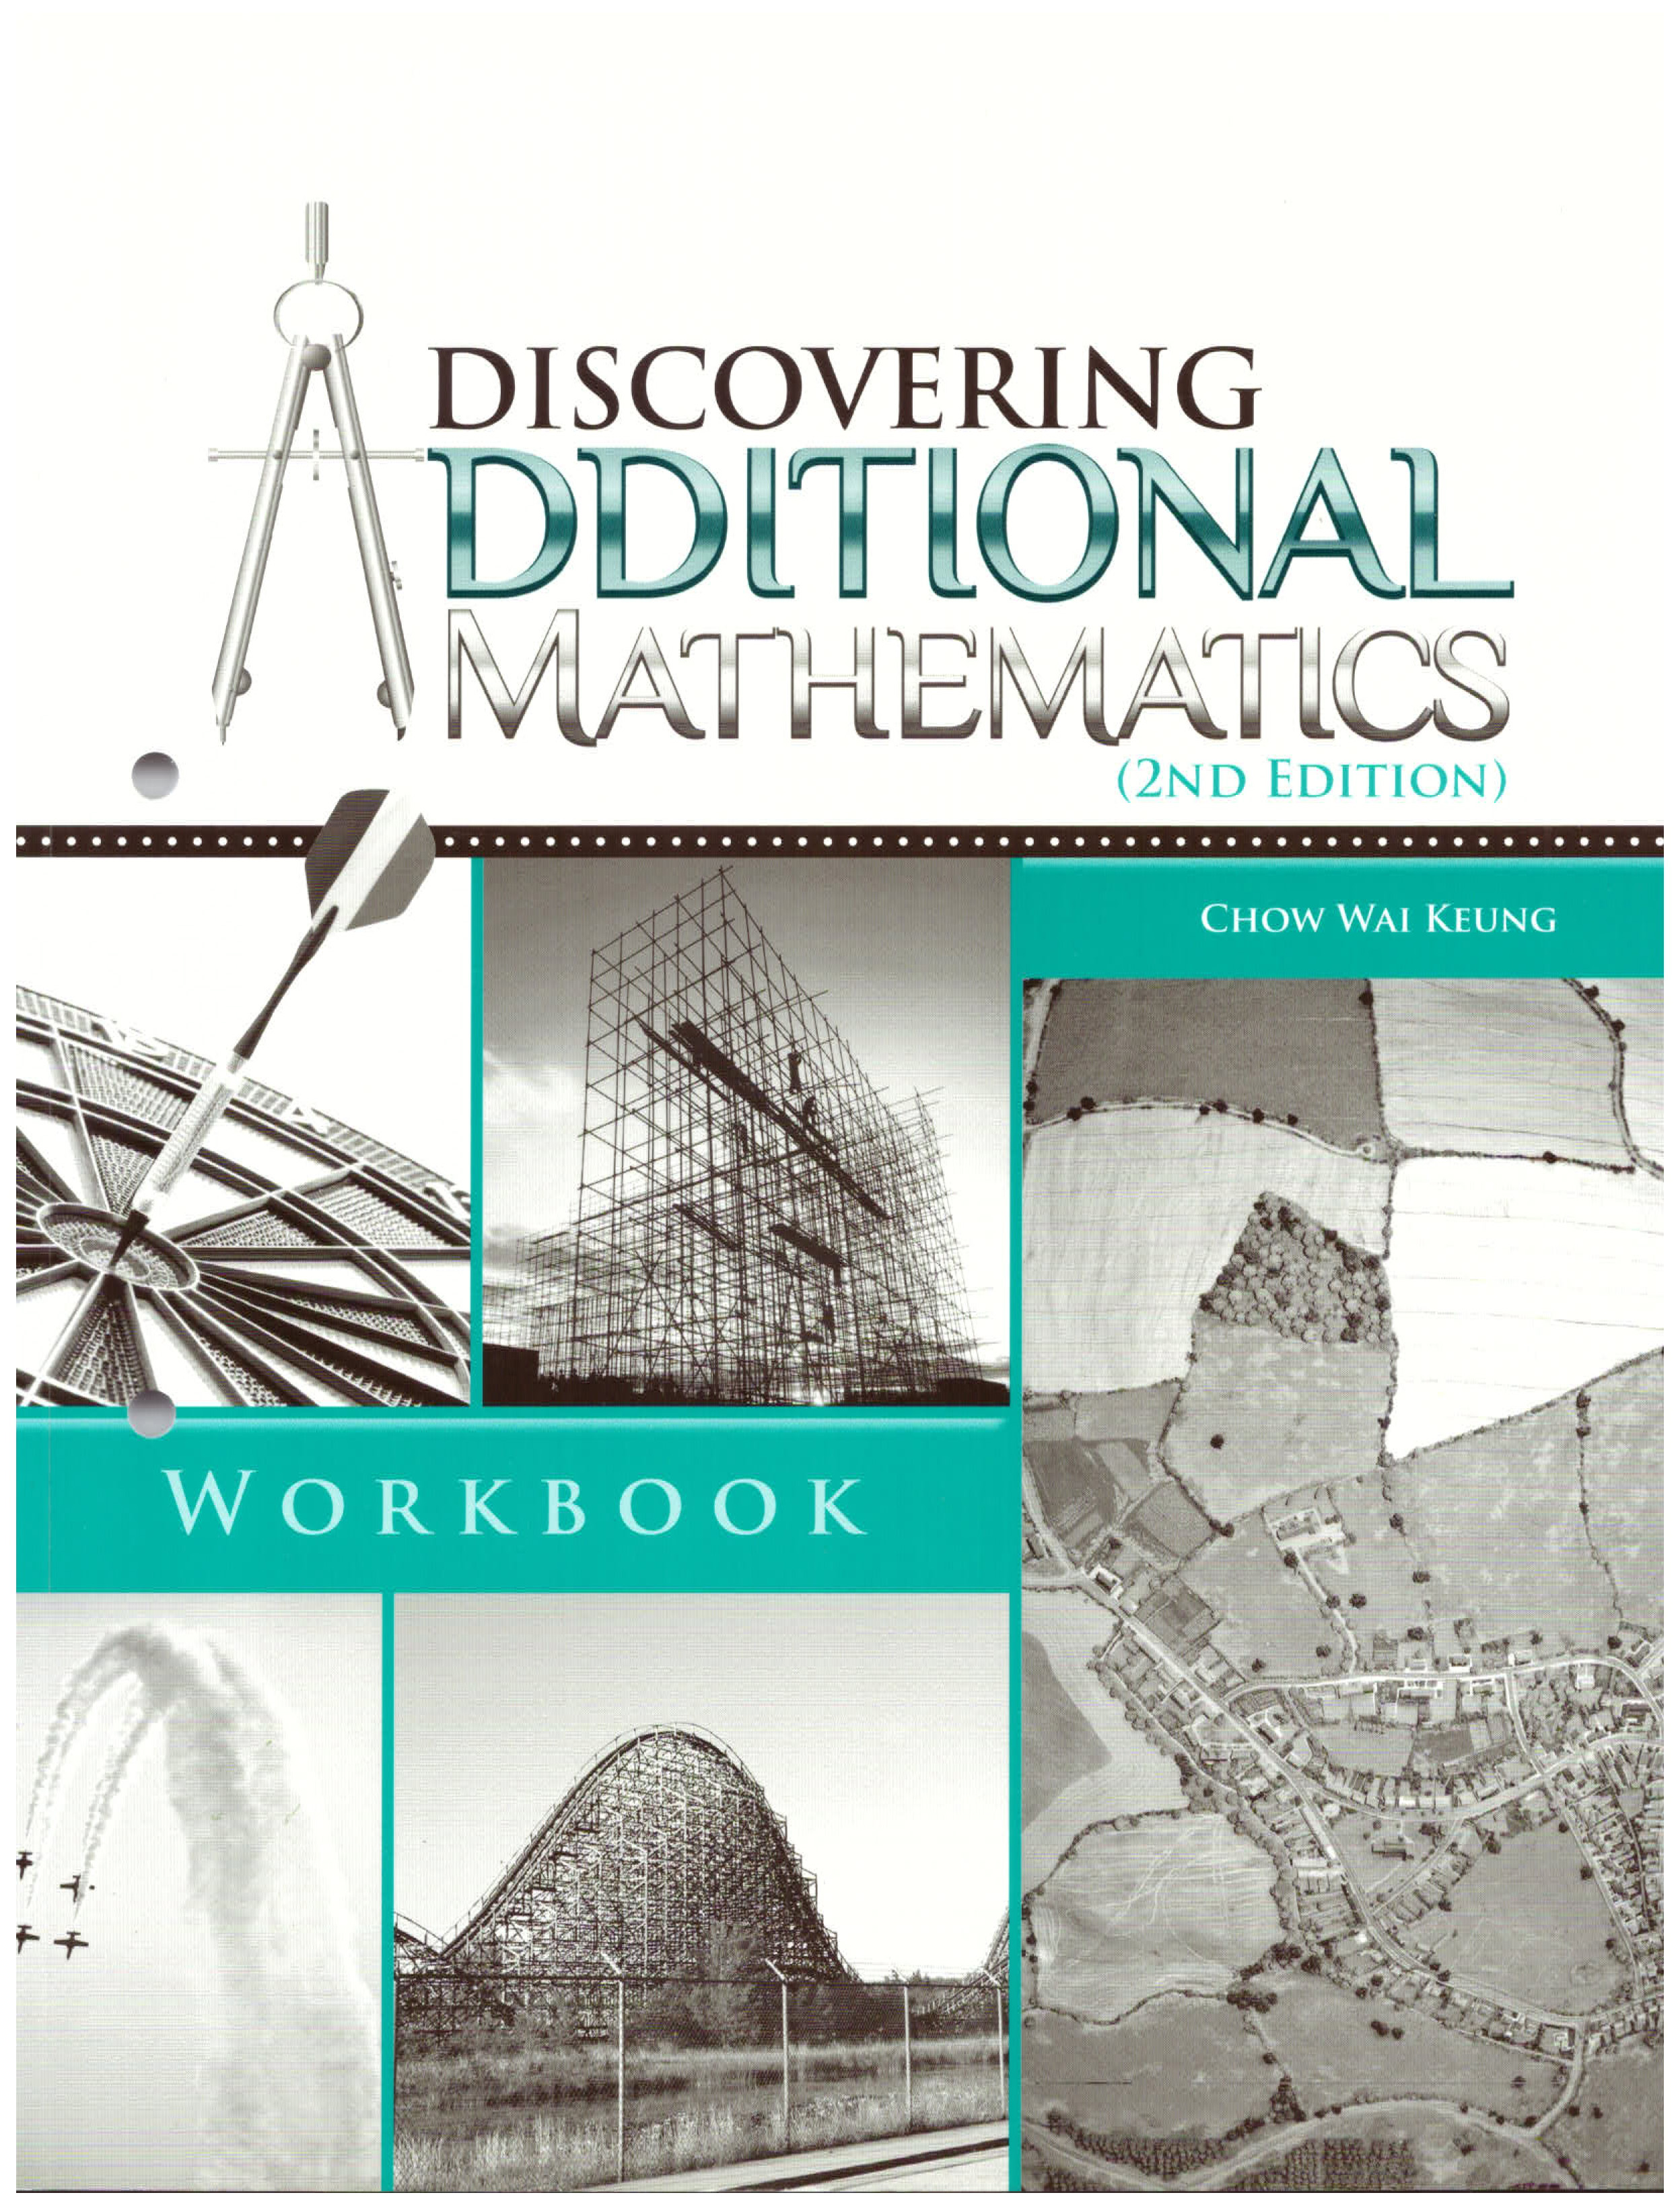 Discovering Additional Mathematics Workbook (2nd Ed) | OpenSchoolbag